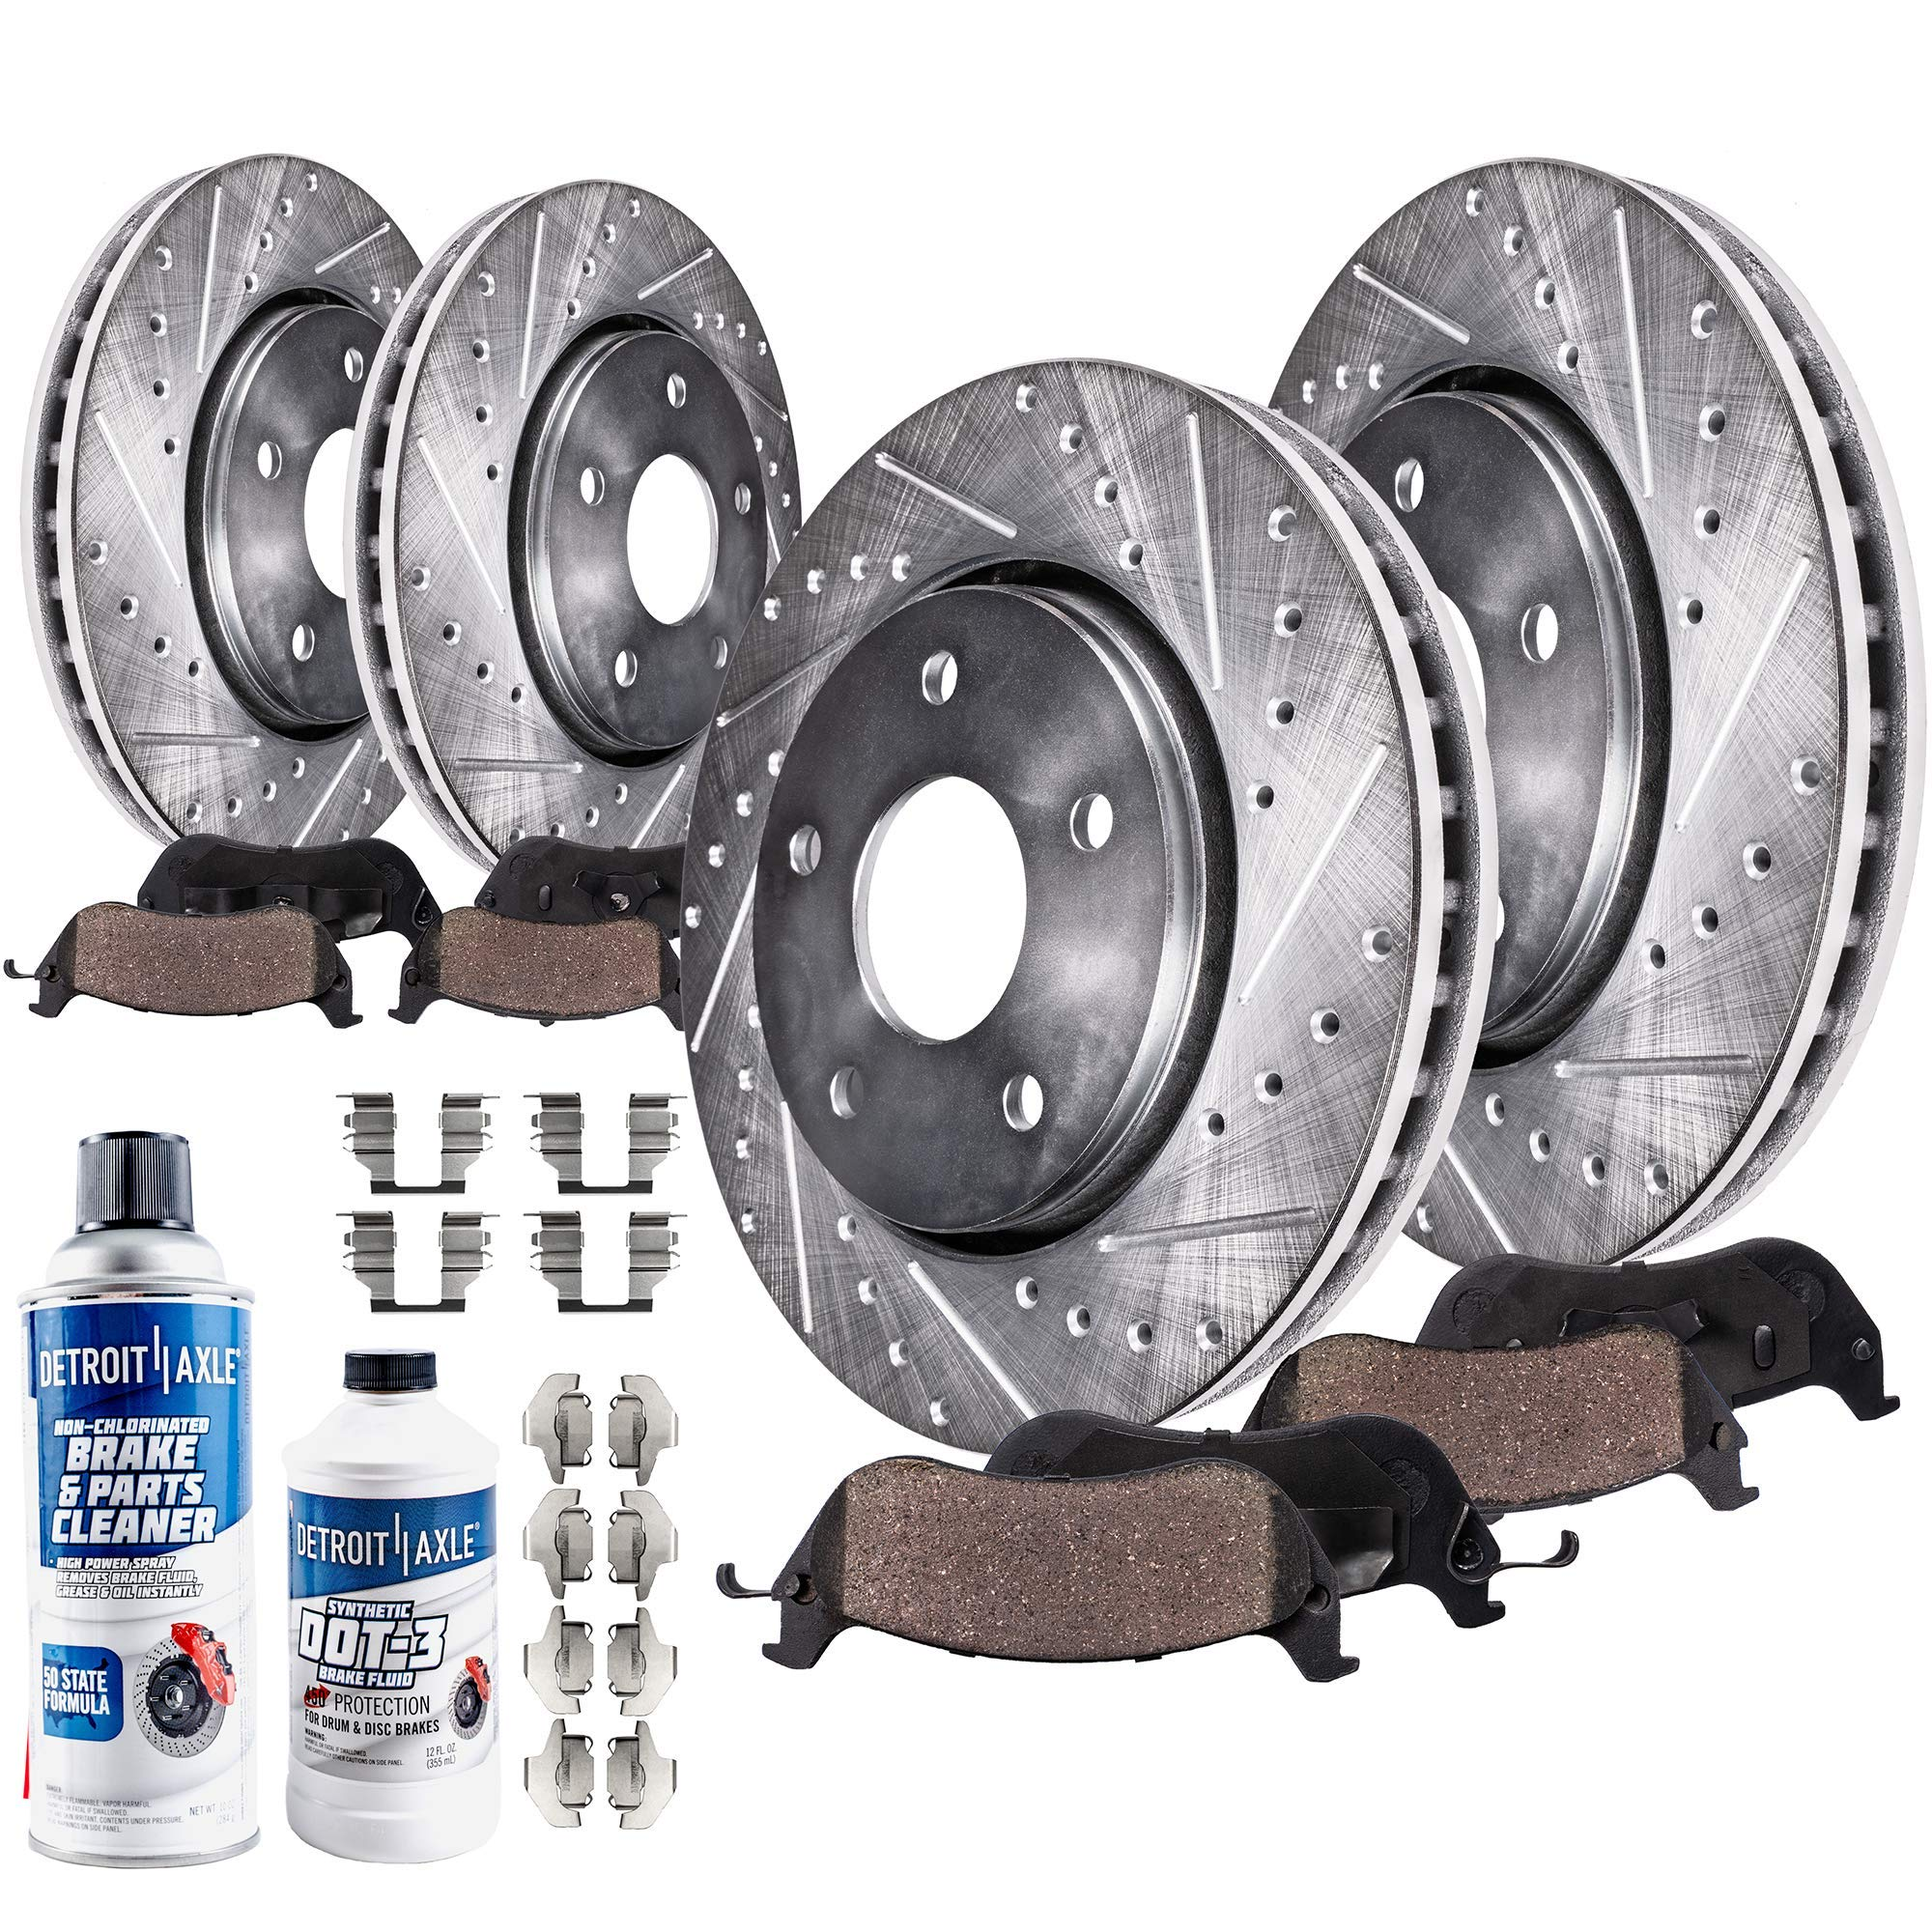 Amazon Com Detroit Axle Read Fitment All 4 5 Lug Front And Rear Drilled And Slotted Disc Brake Kit Rotors W Ceramic Pads W Hardware Brake Kit Cleaner Replacement For 2007 2017 Chrysler Dodge Ram